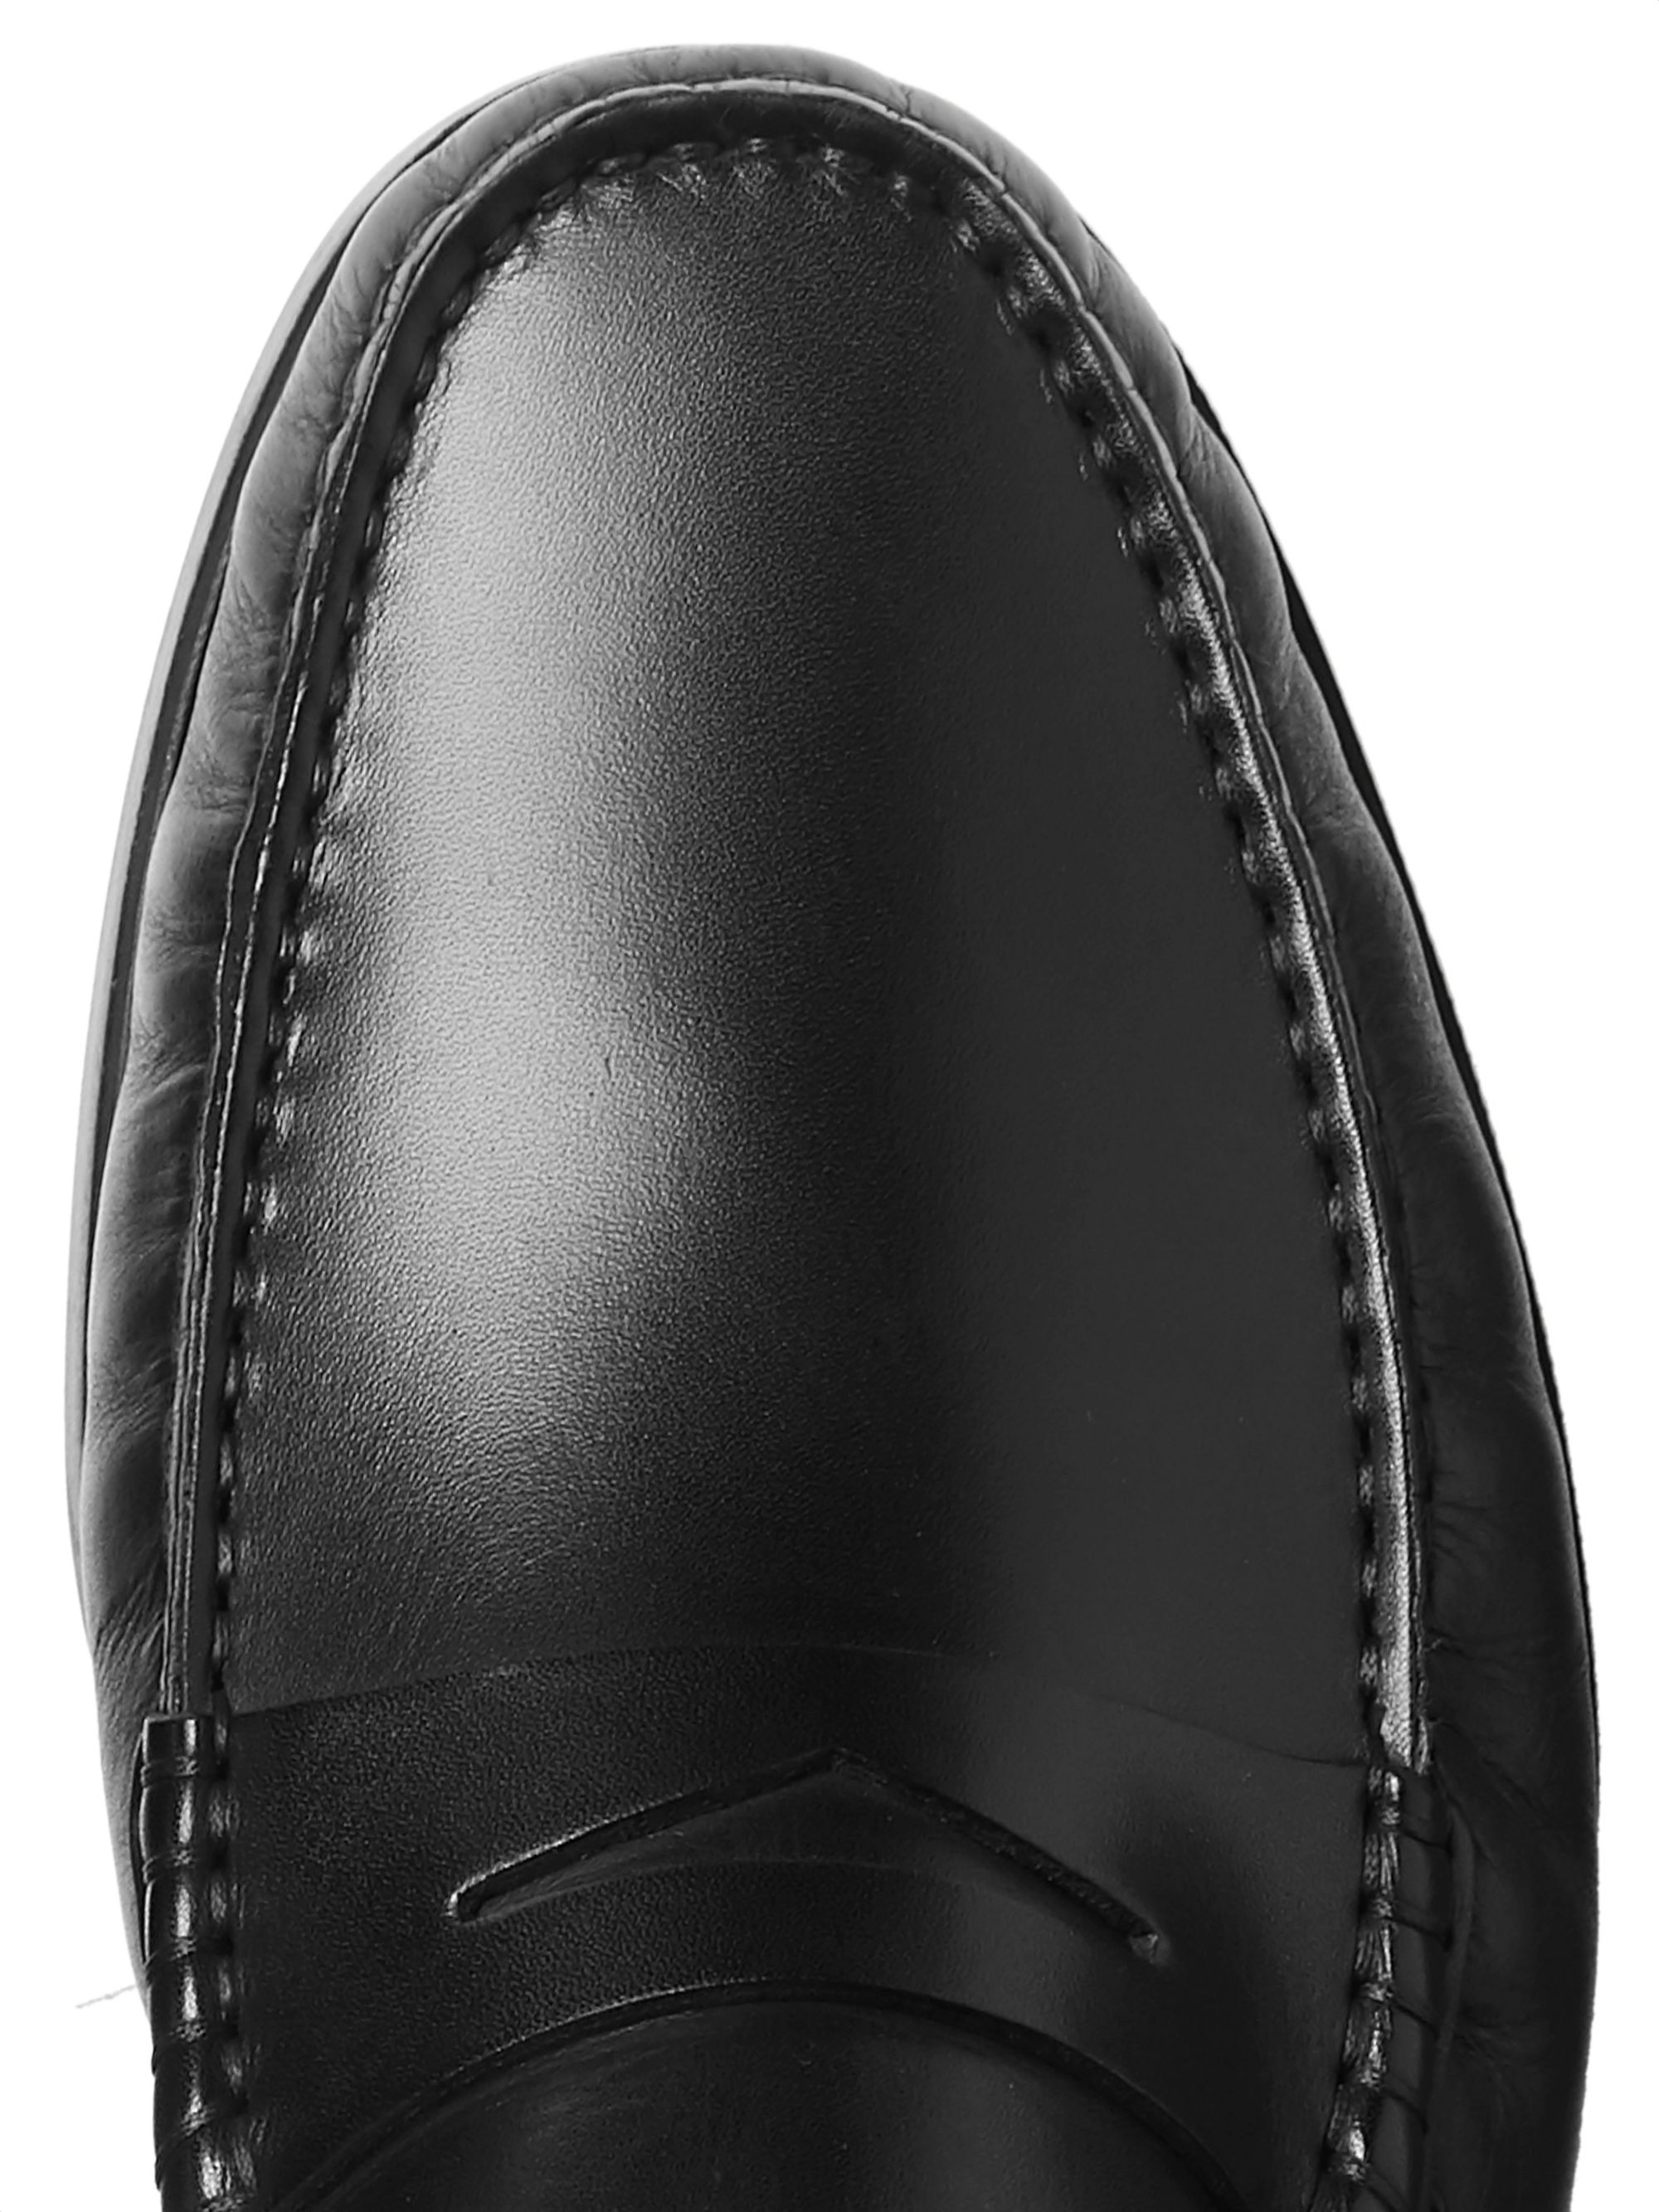 Hugo Boss Riviera Leather Penny Loafers